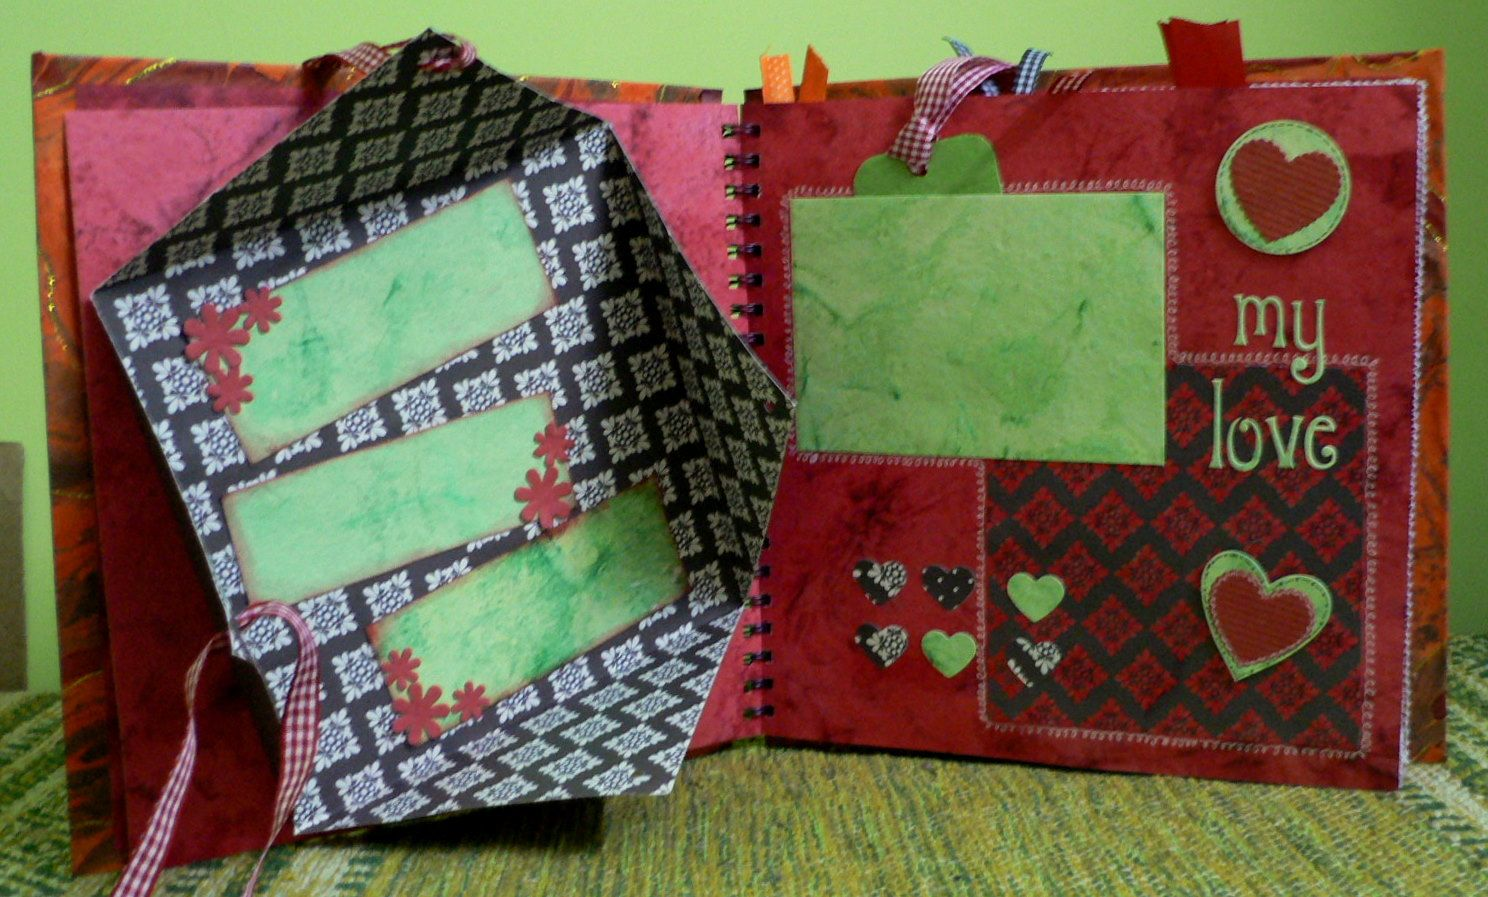 handmade invitation cards for farewell party - Google Search   Cards ...